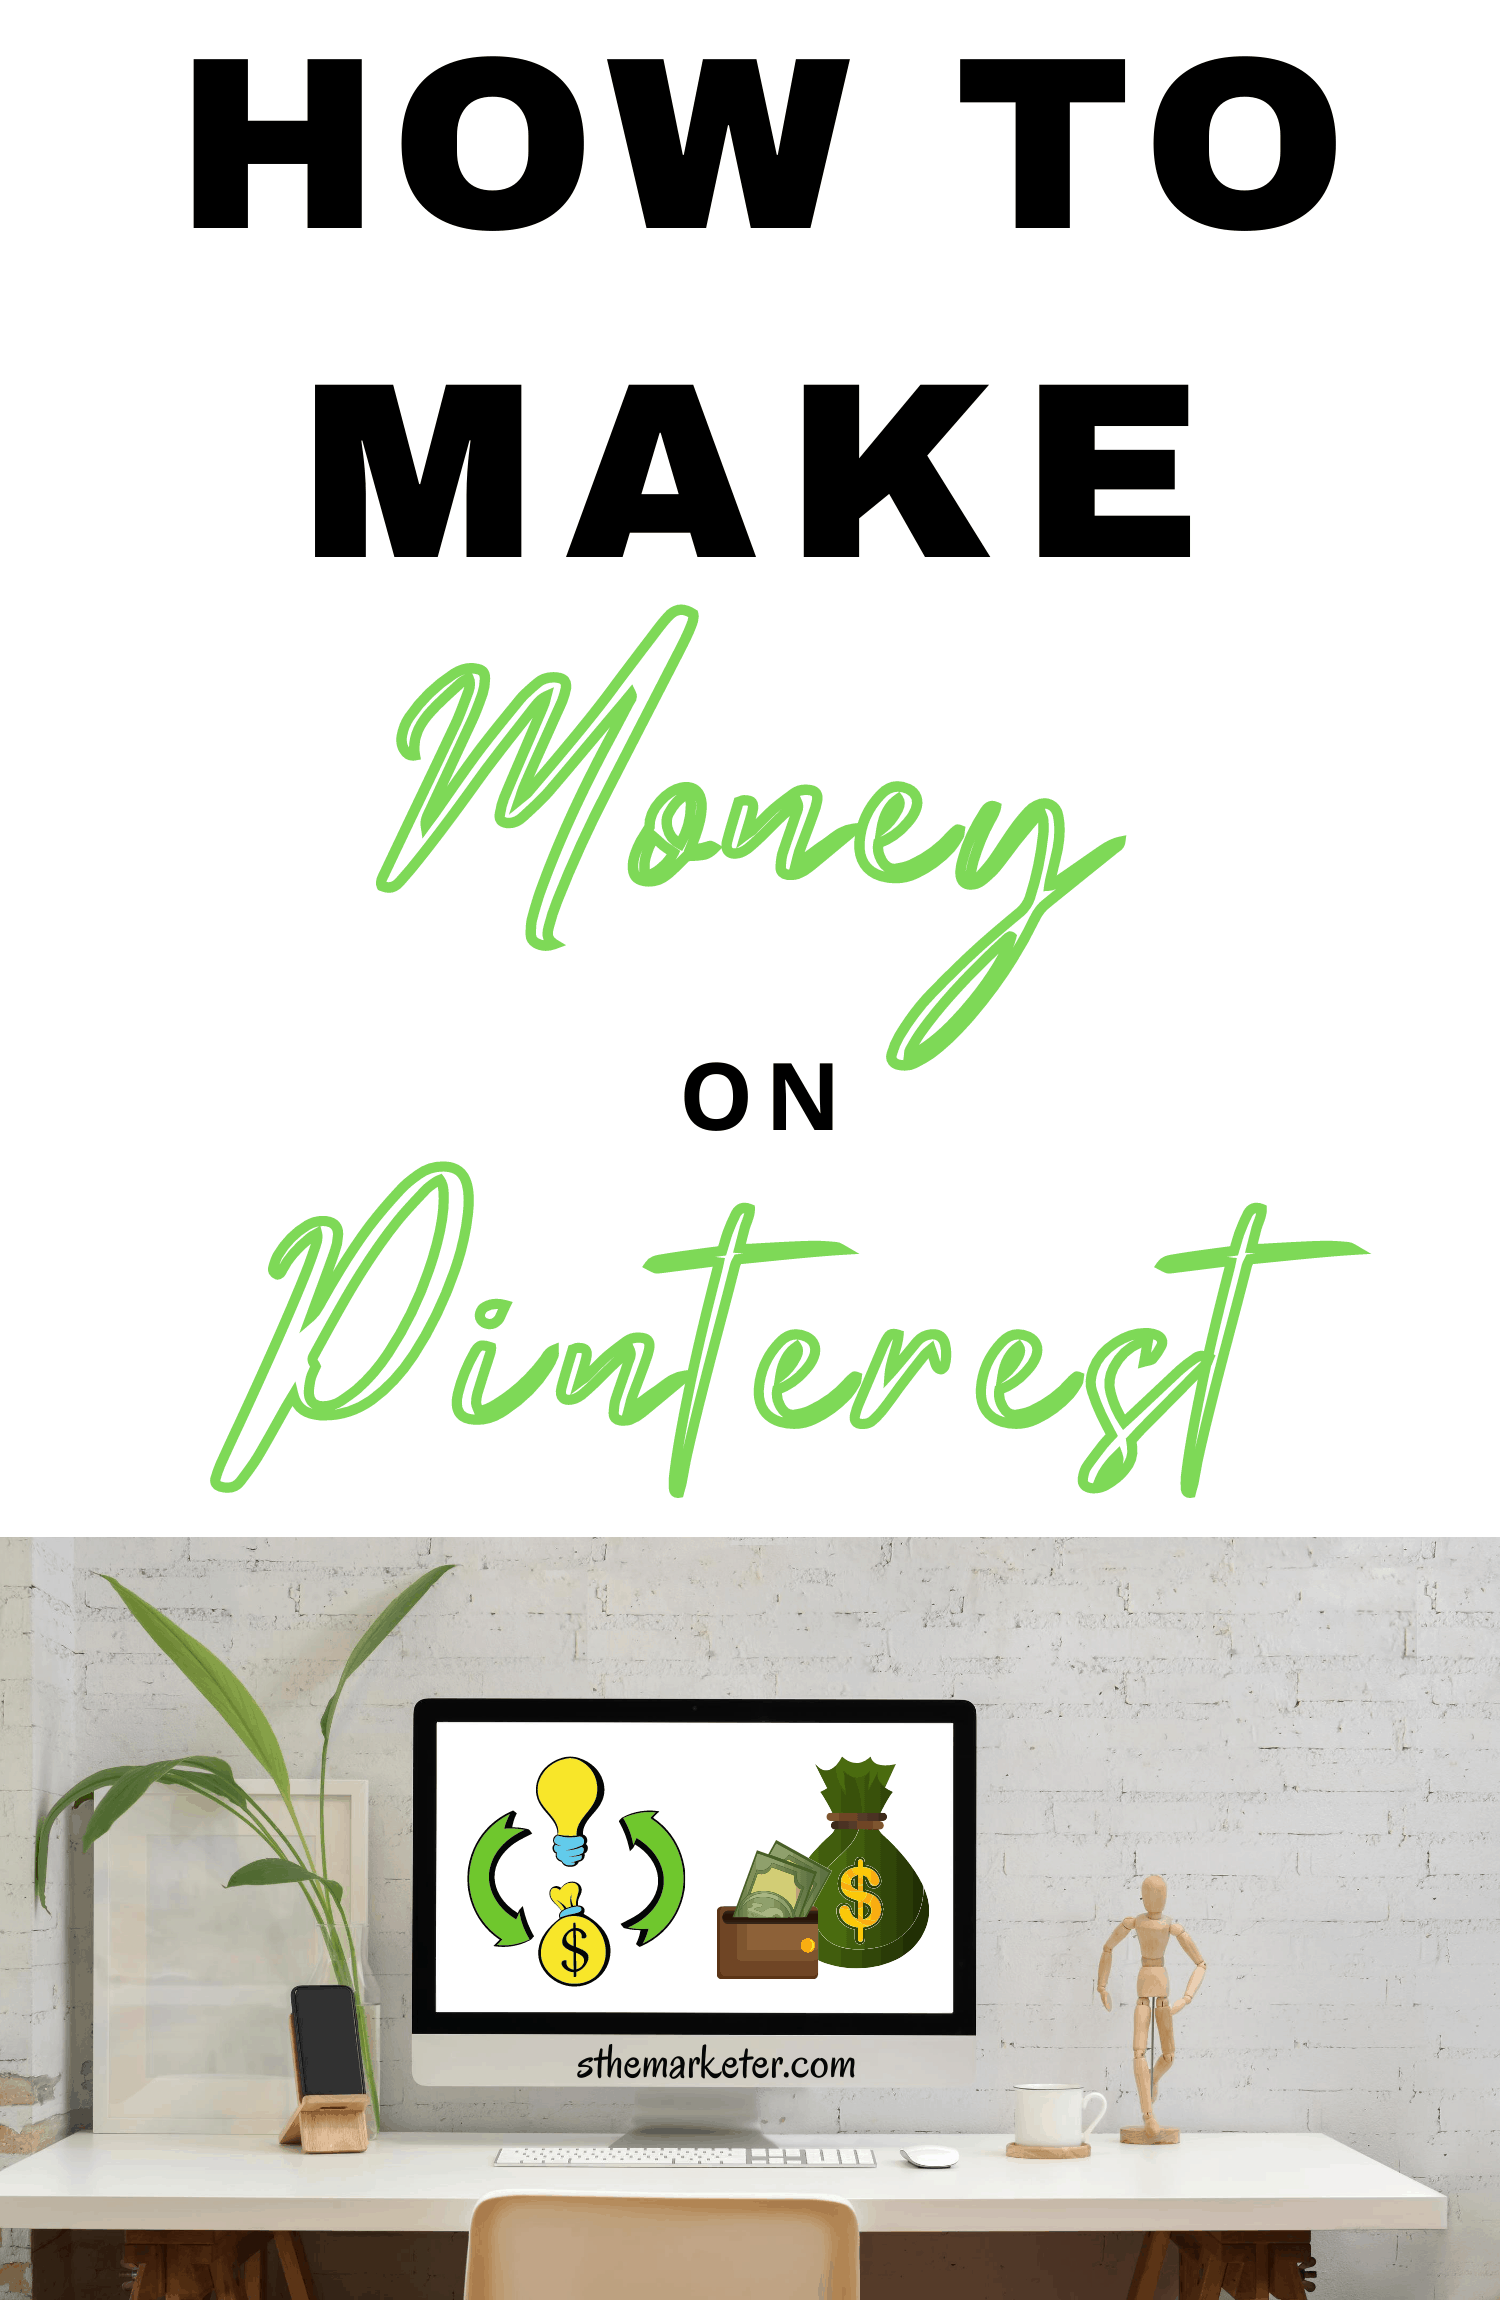 How to Make Money on Pinterest in 2020 & Beyond